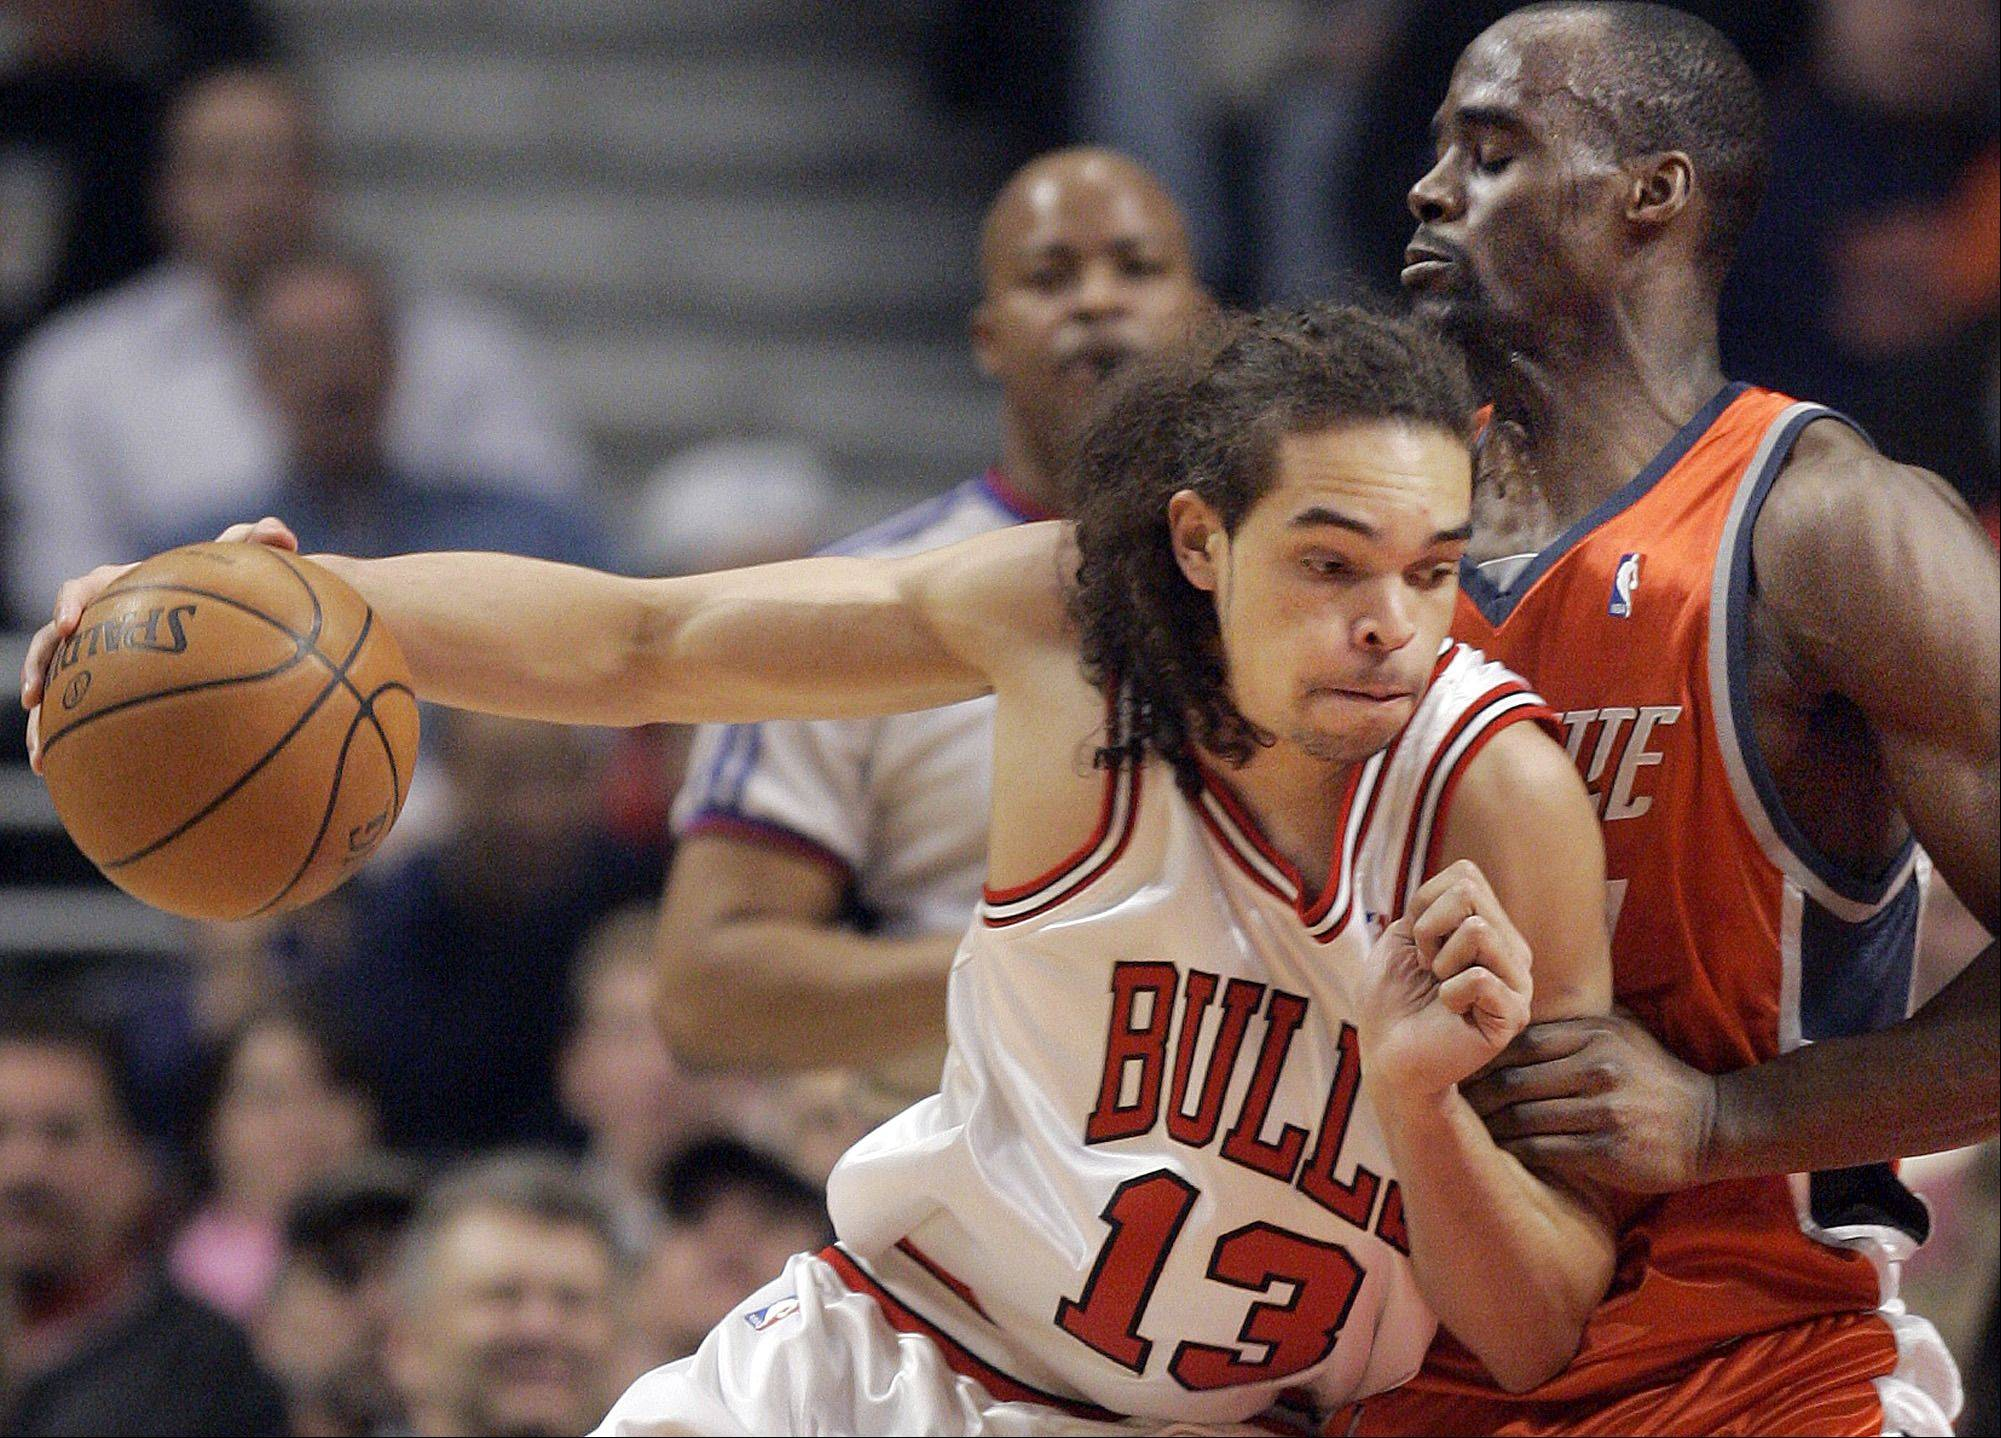 Chicago Bulls center Joakim Noah has signed an endorsement deal with sporting apparel brand Adidas.